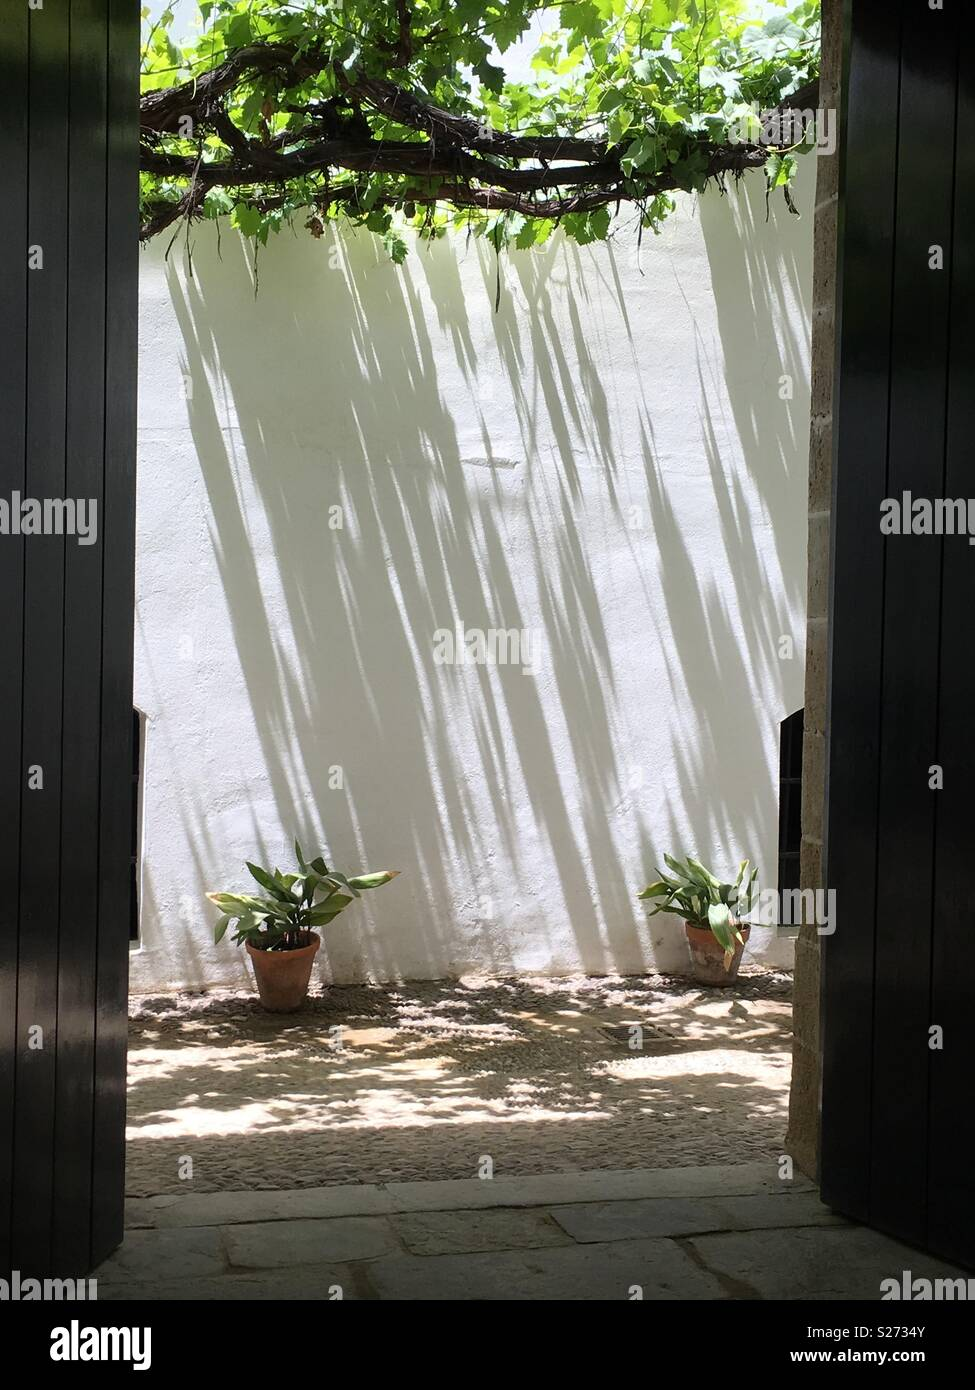 In the shade,  solitary pot plants - Stock Image